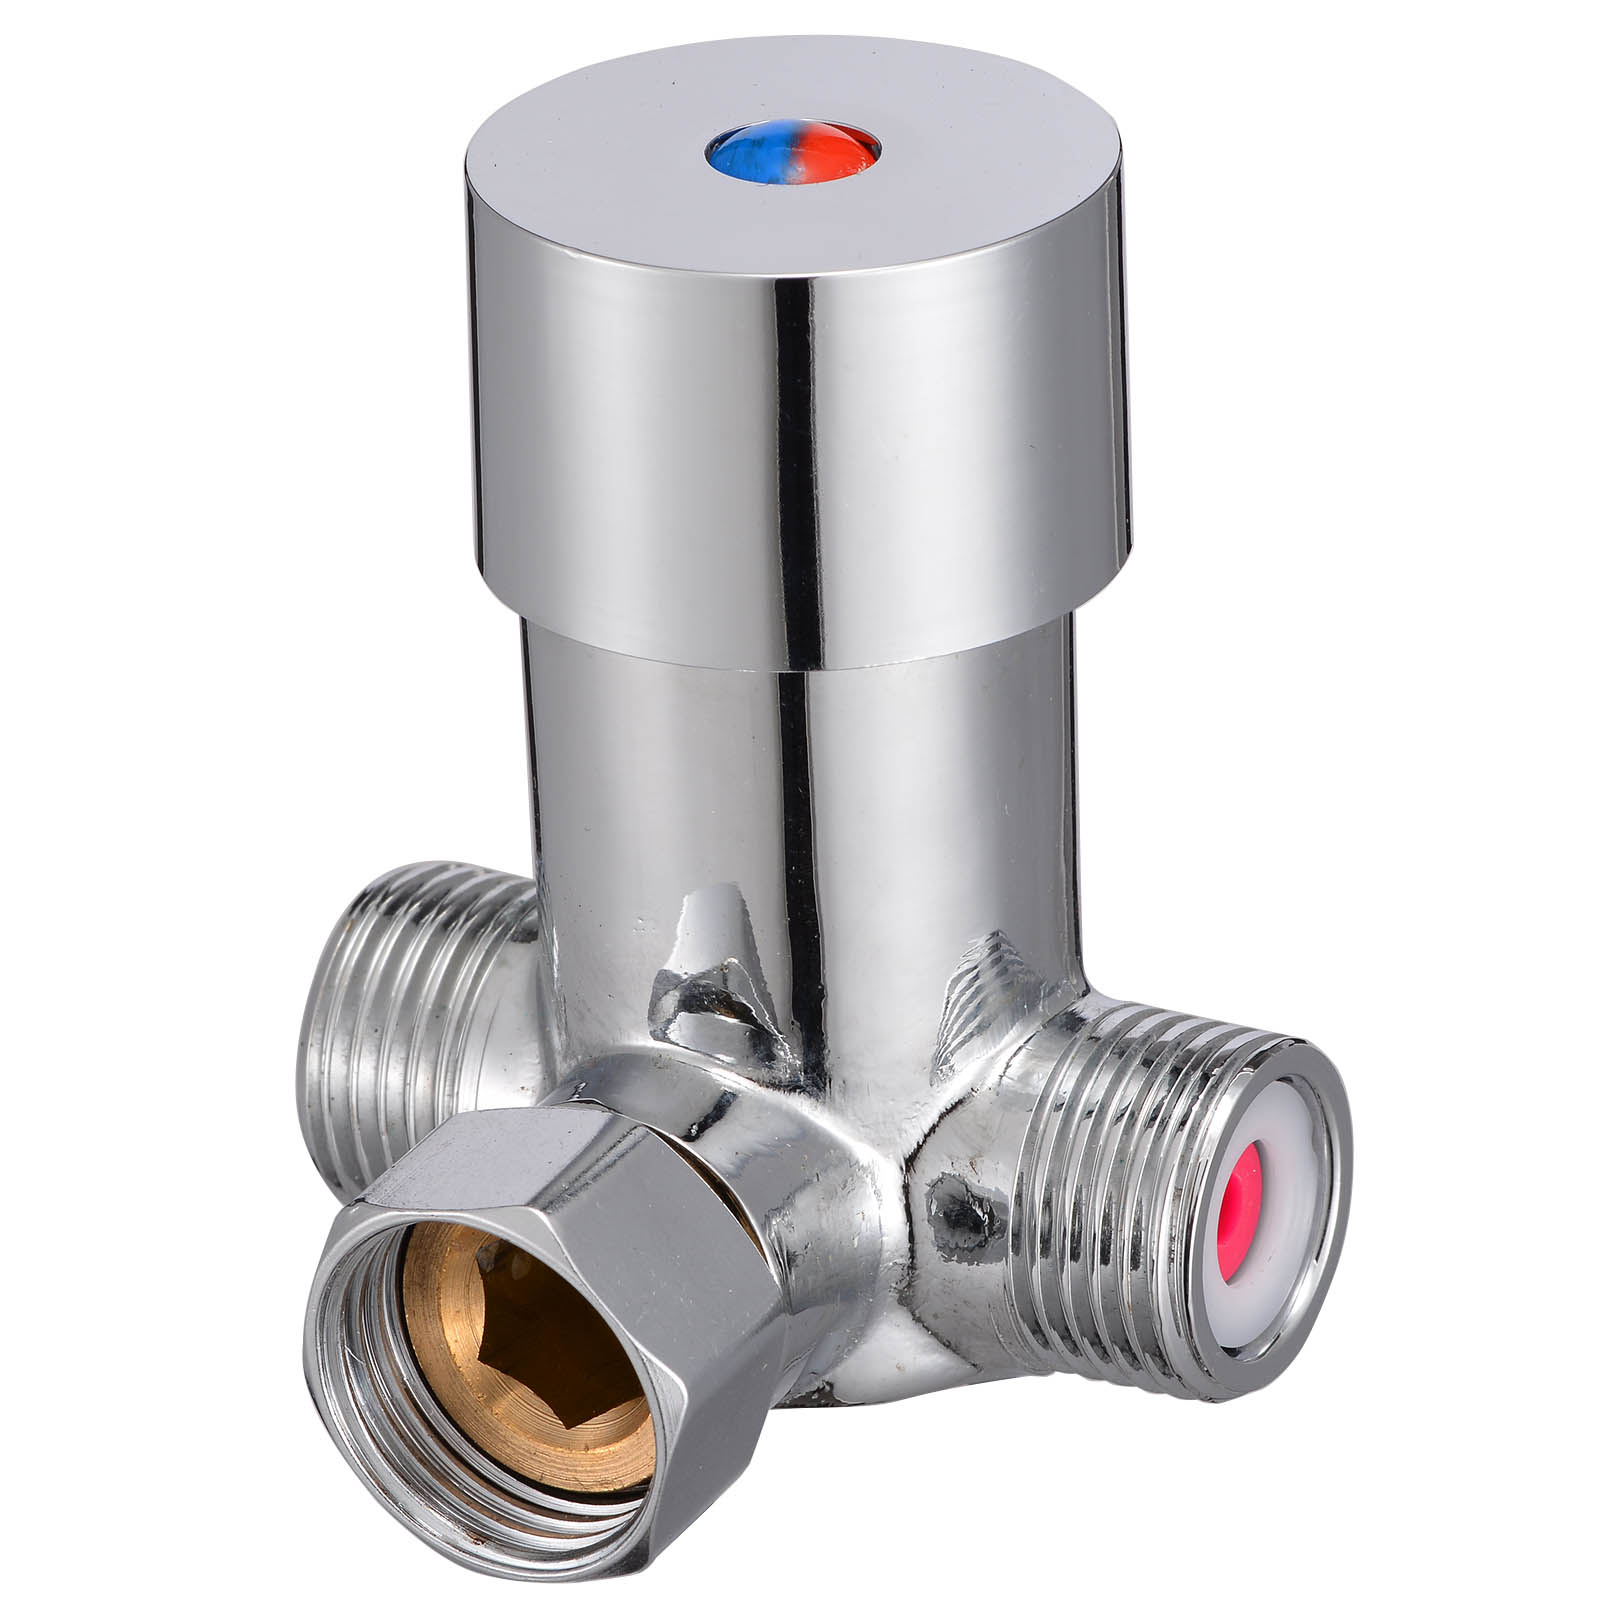 Bathroom Hot Cold Water Valver Temperature Adjustable Thermostatic Mixer Mixing Valve Sensor Tap for Shower Head Faucet Taps